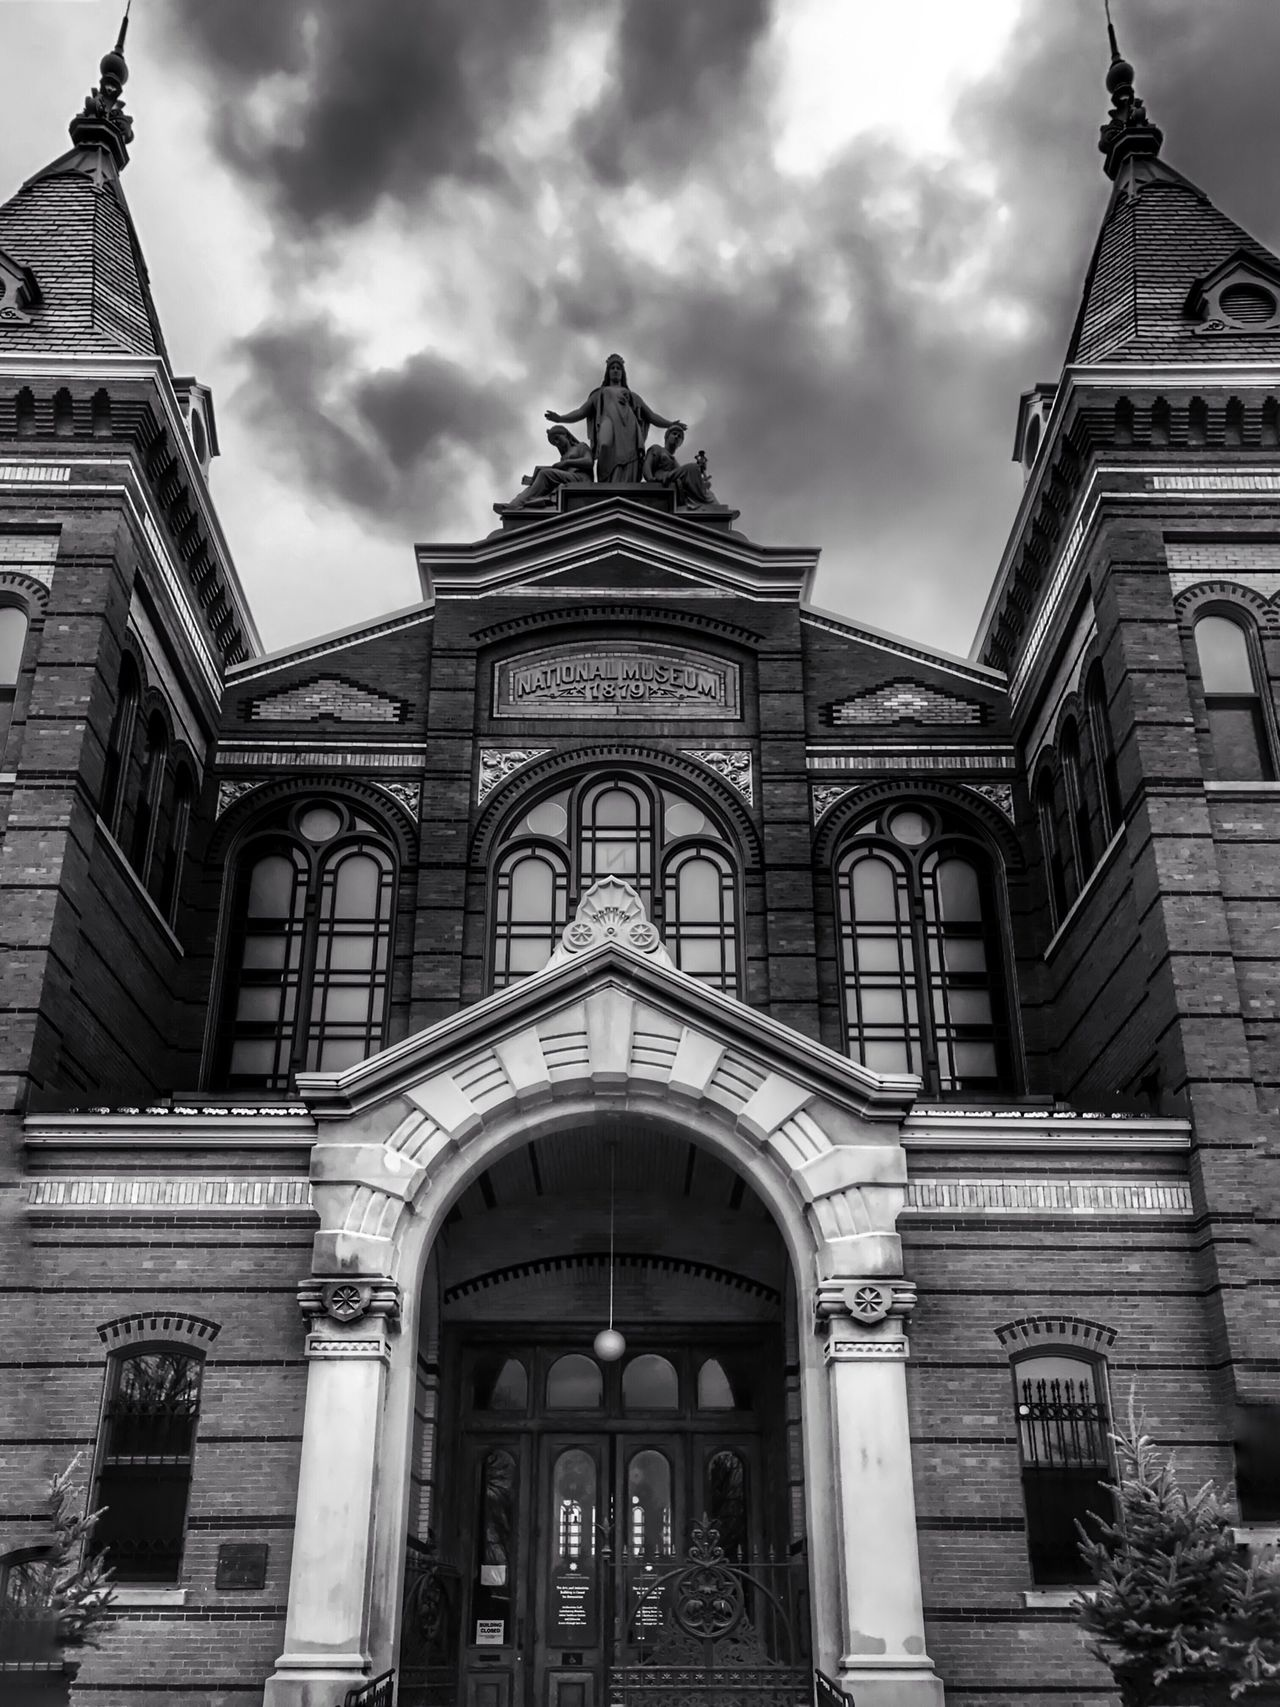 A black & white look at the Smithsonian Arts & Industries Building in Washington D.C. Washington, D. C. Blackandwhite Architecture Building Exterior Landmark IPhoneography